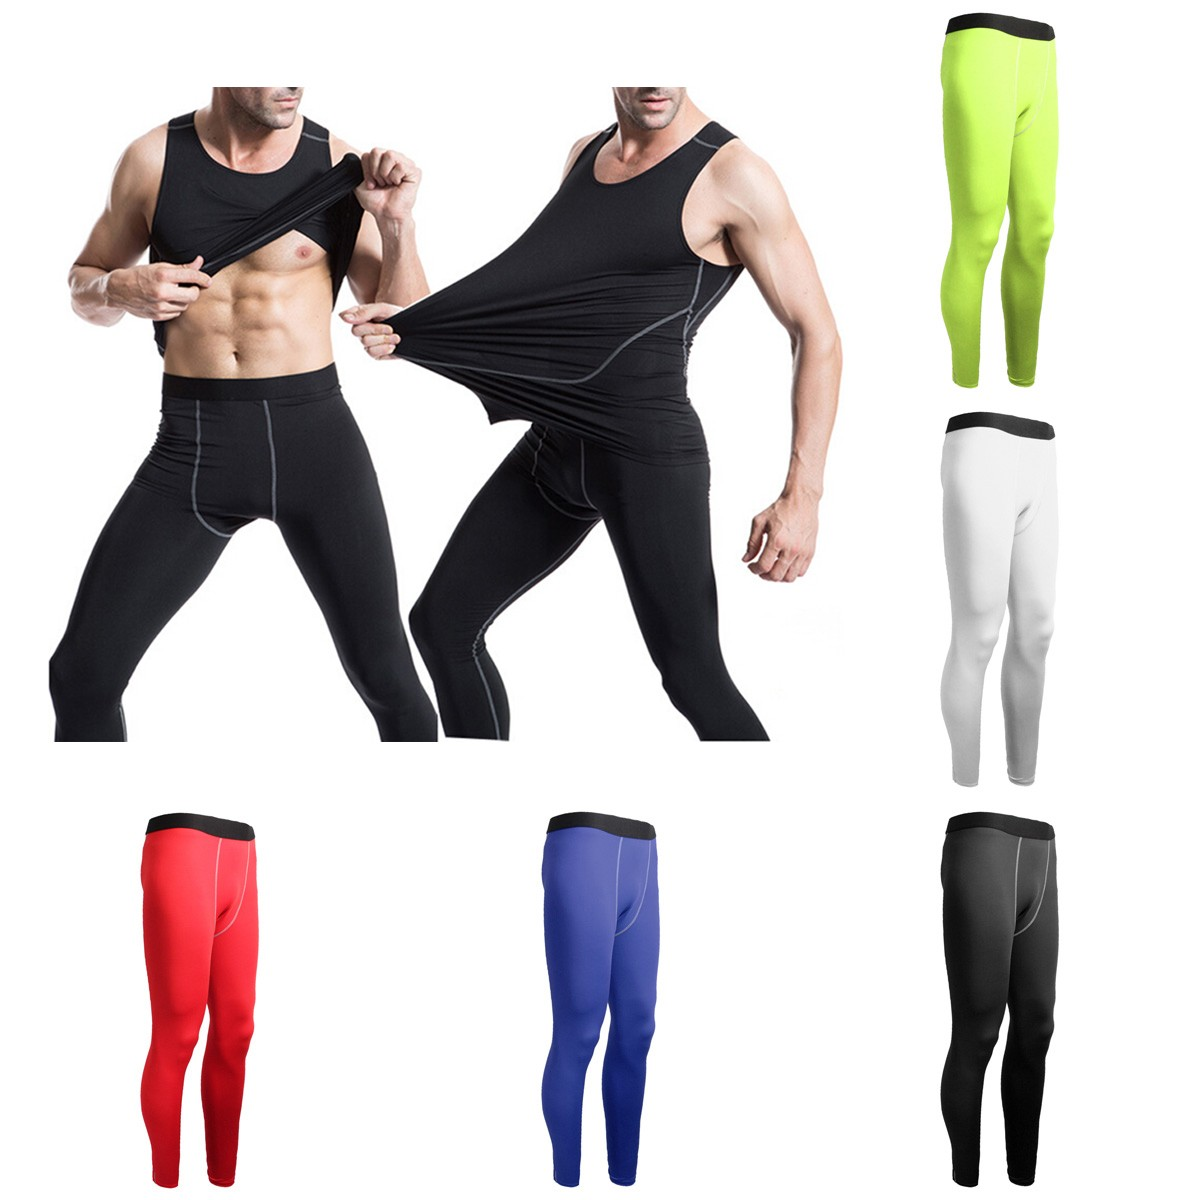 931641bdd5624 Men Sports Pants Base Layers Tights Compression Long Pants For Training  Fitness · eddafee0-9e40-4583-b478-6107d624da21.jpg ...